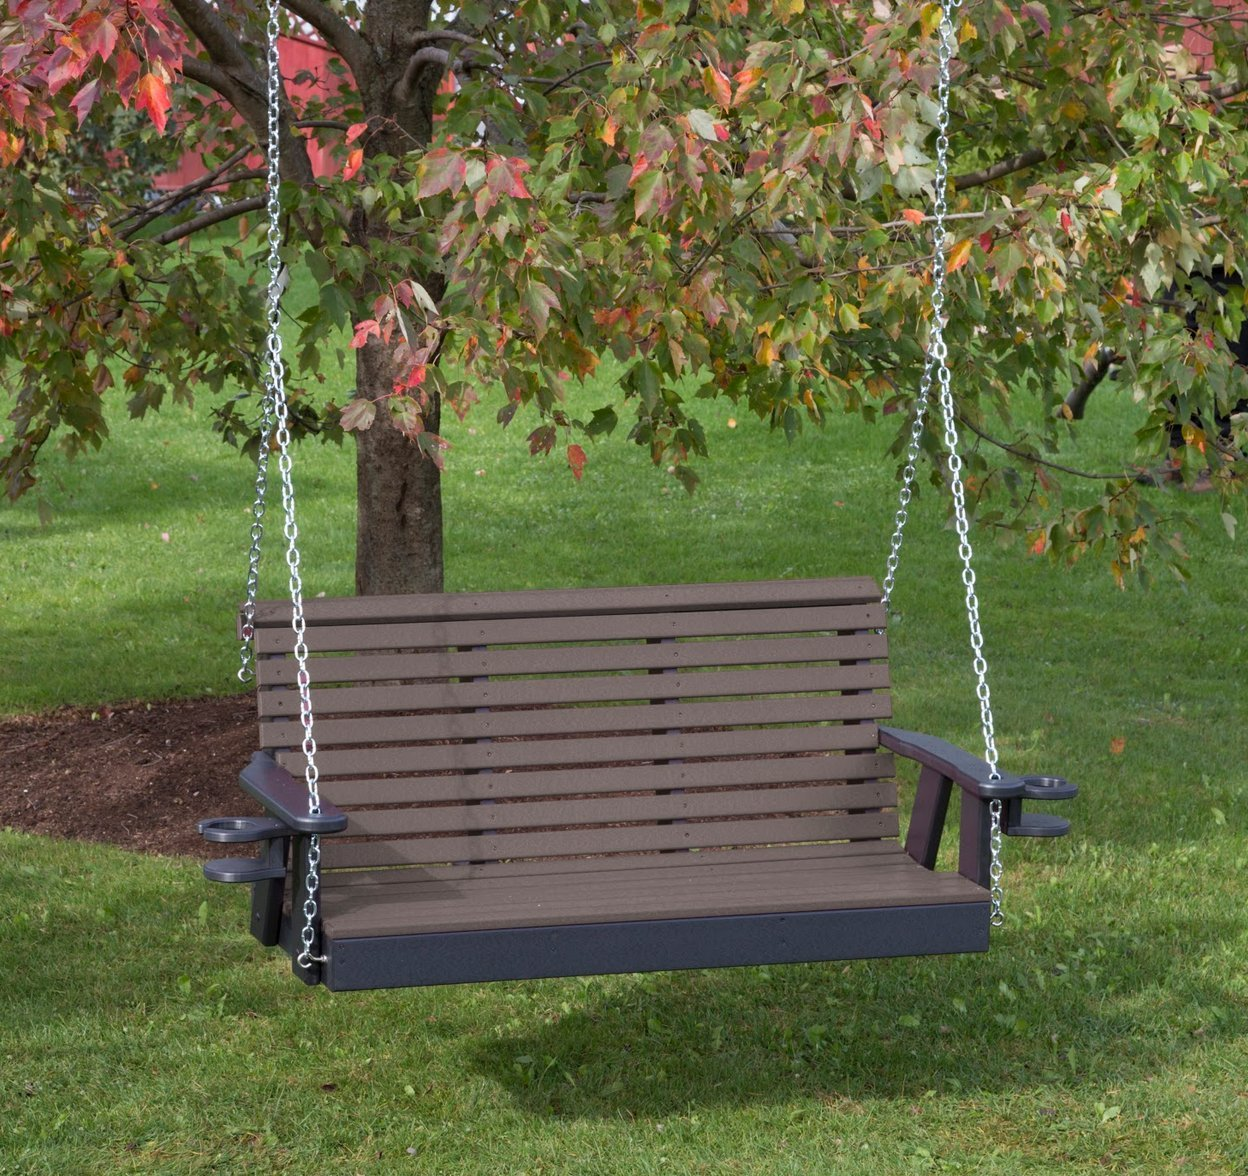 POLY LUMBER ROLL BACK Porch Swing with Cupholder arms Heavy Duty EVERLASTING PolyTuf HDPE - MADE IN USA - AMISH CRAFTED (5FT, WEATHERED WOOD)